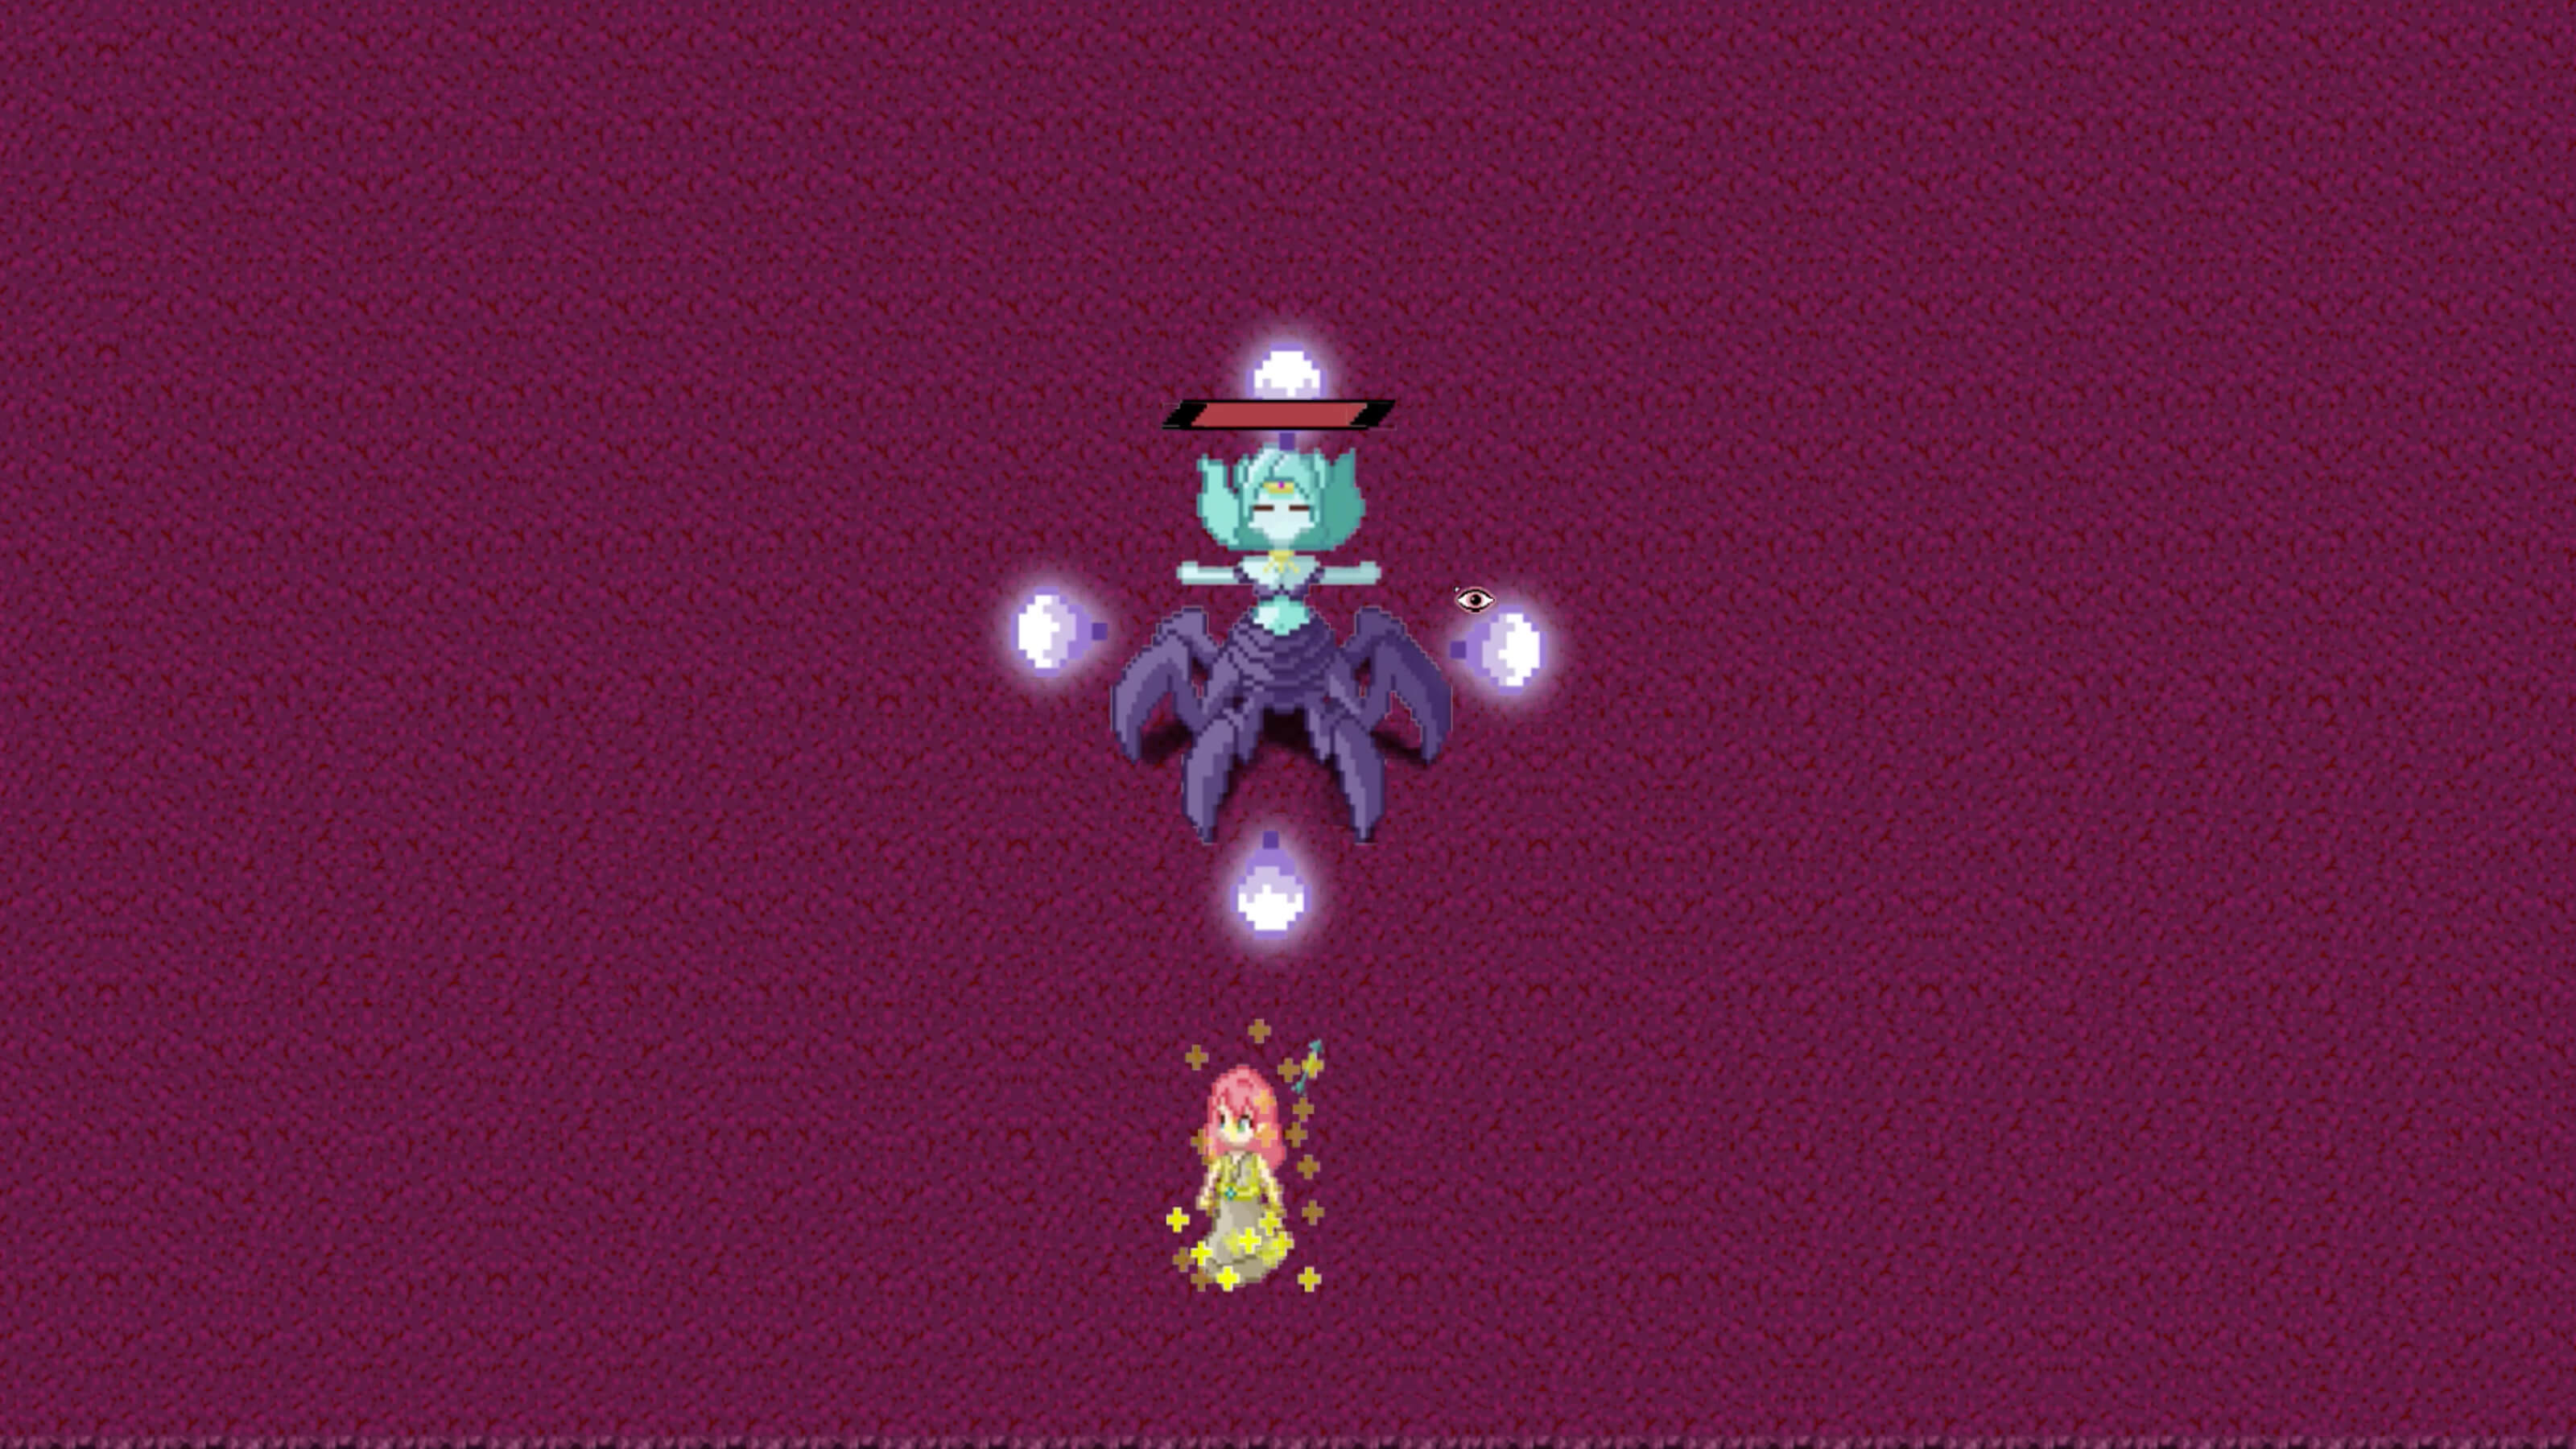 A turquoise-colored boss with six purple legs is surrounded by four floating violet orbs of light